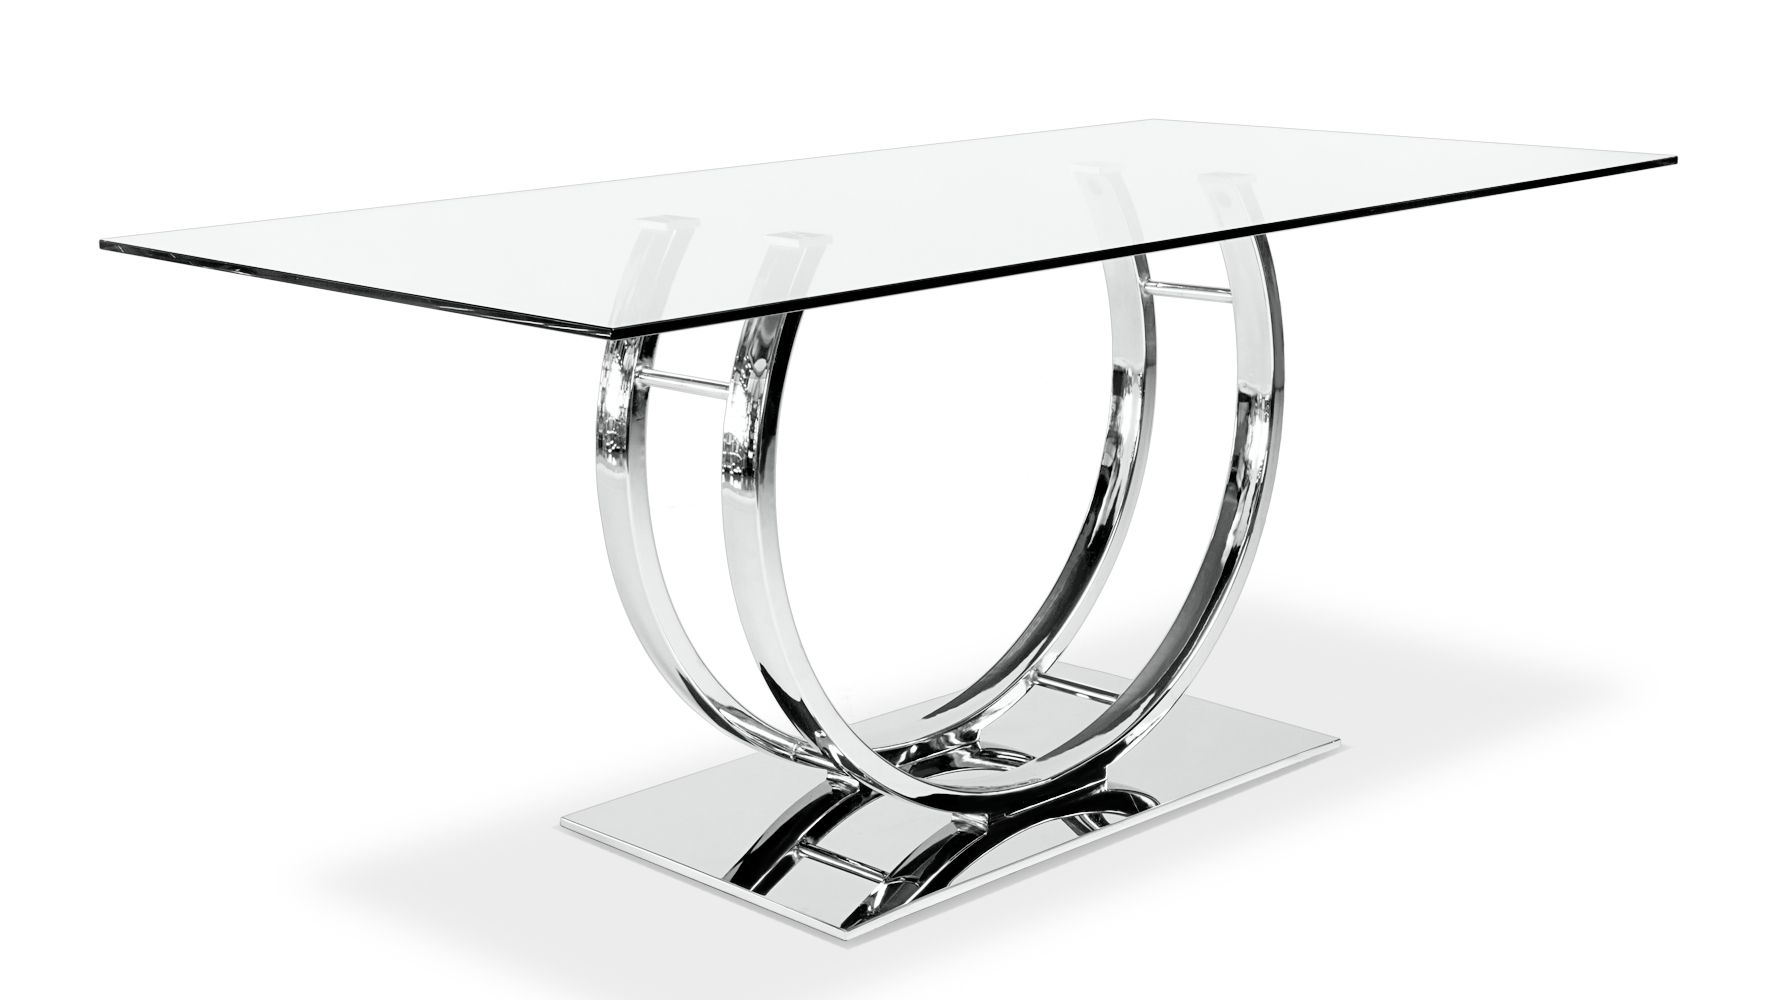 Wonderful Palazzo Glass Modern Dining Table With Polished Chrome Base | Zuri Furniture